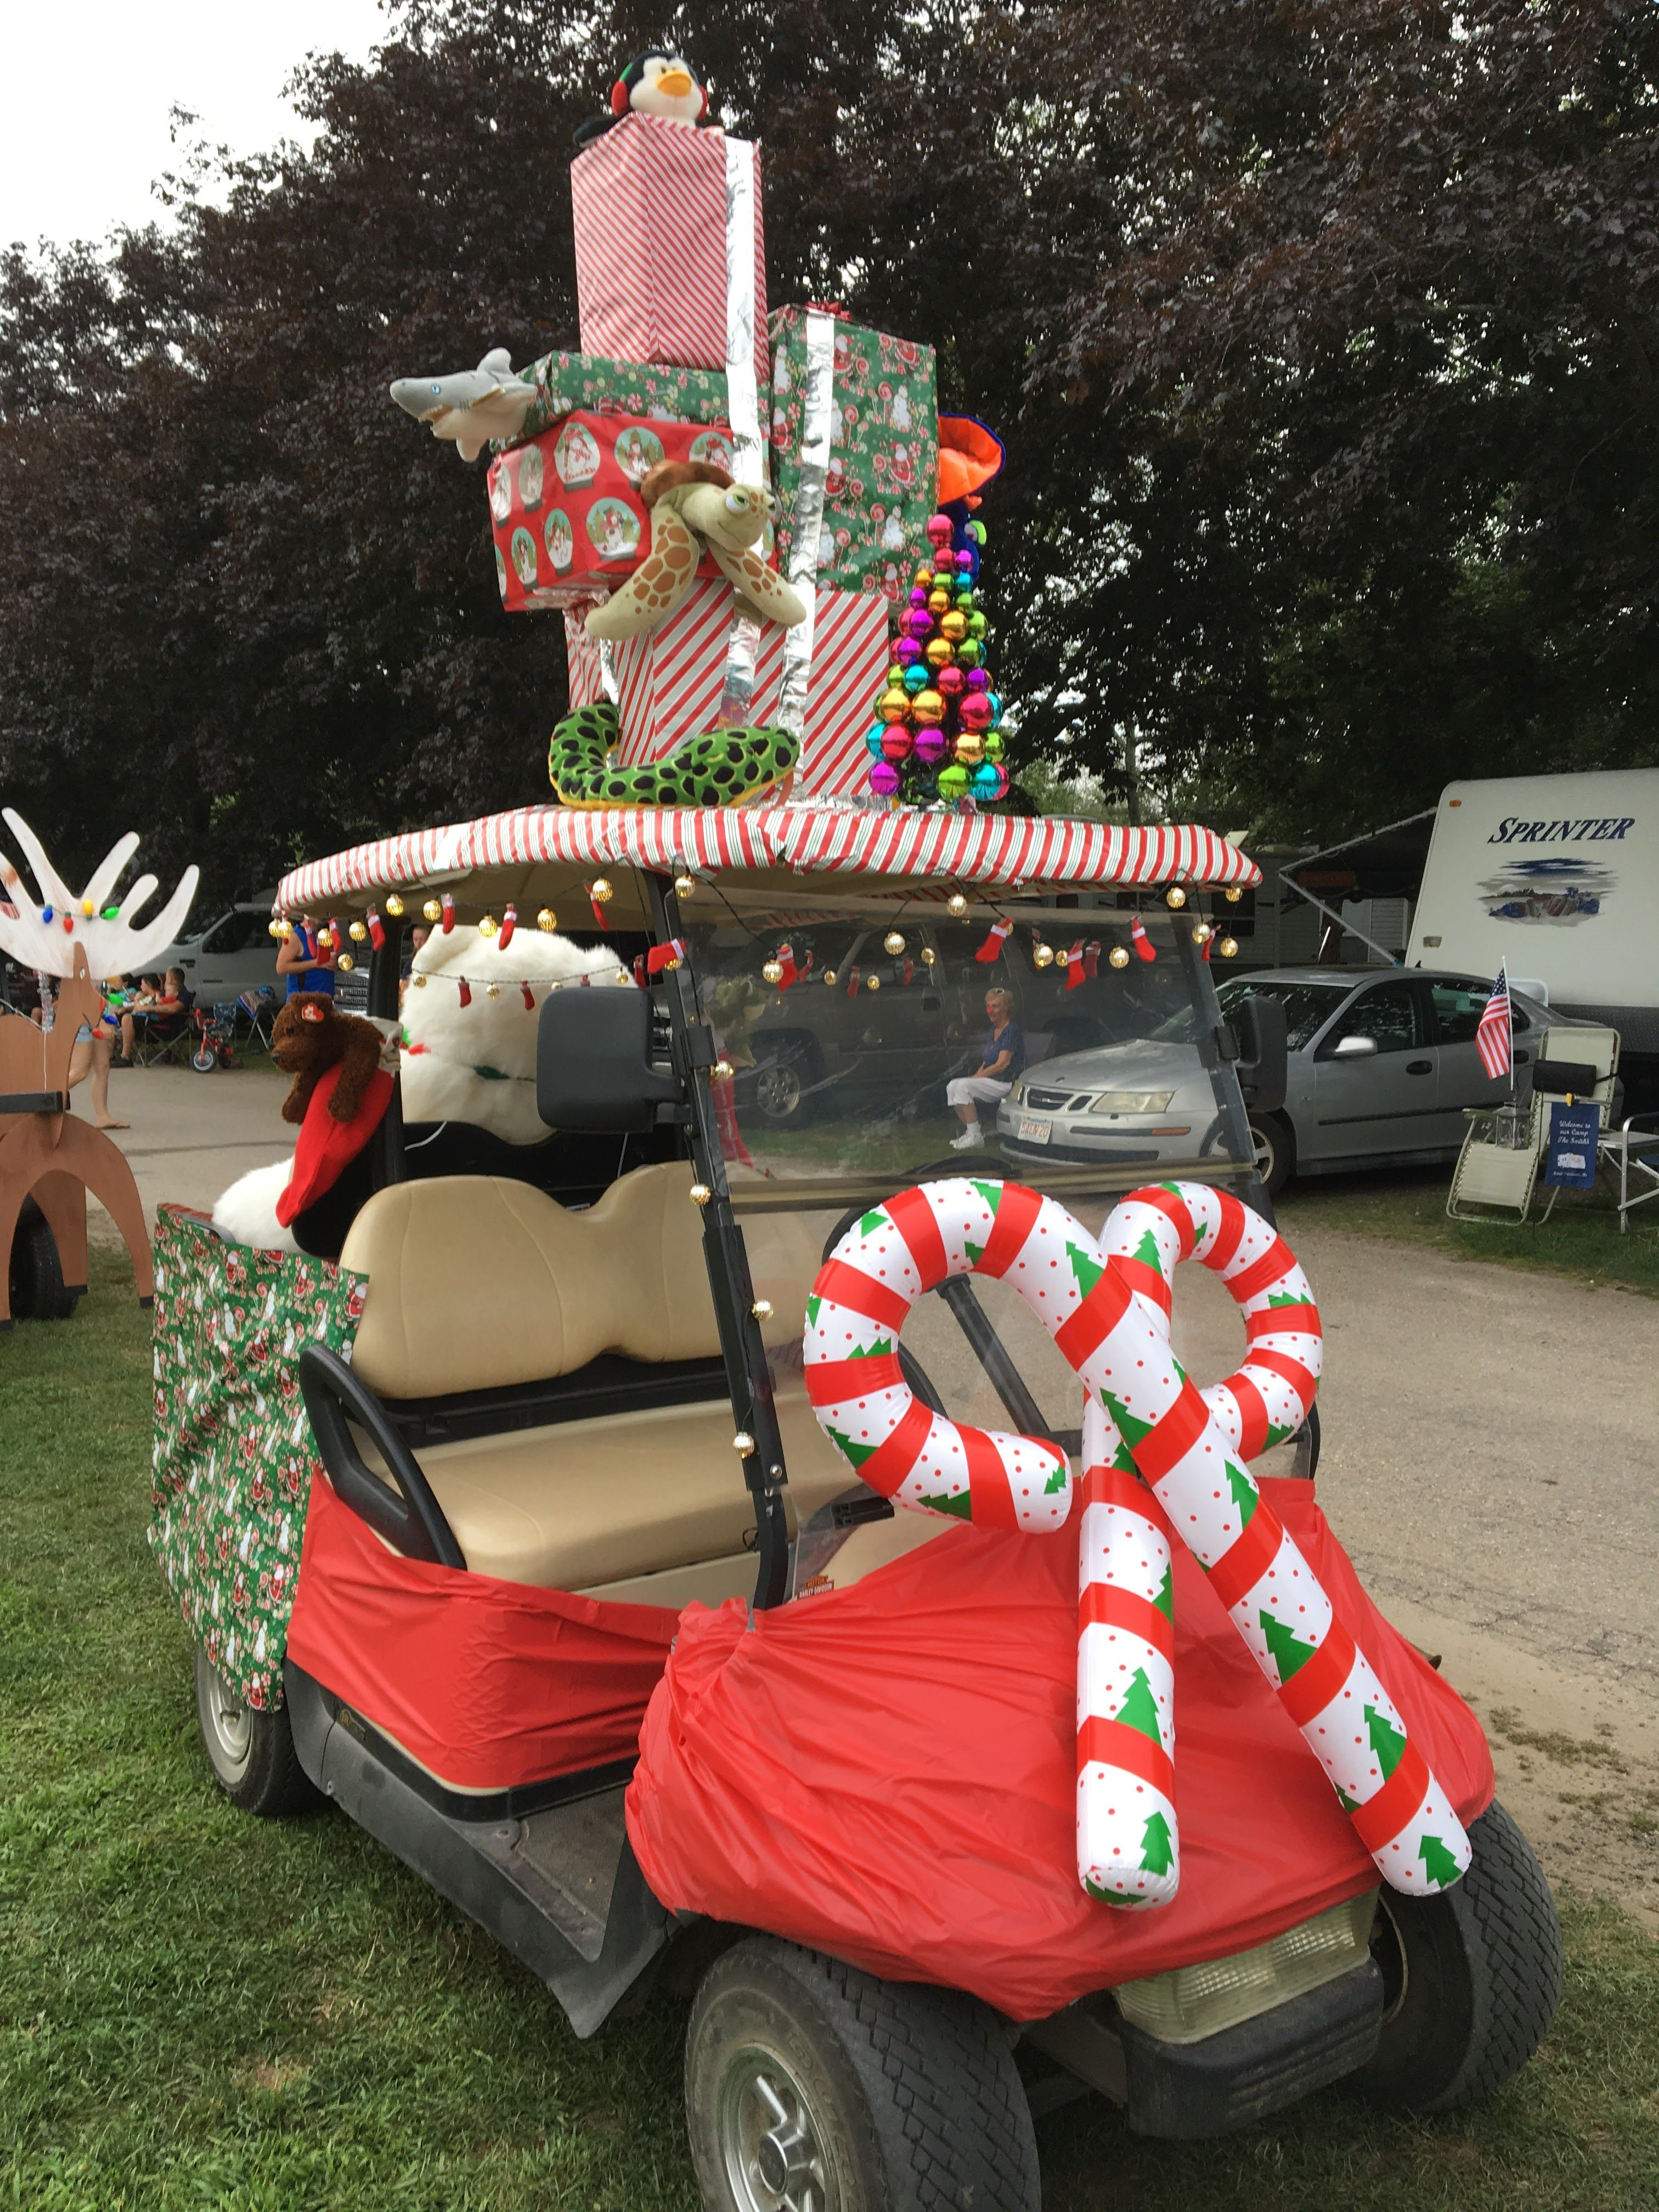 Christmas In July Humor.Christmas In July At Strawberry Park Golf Cart Ideas